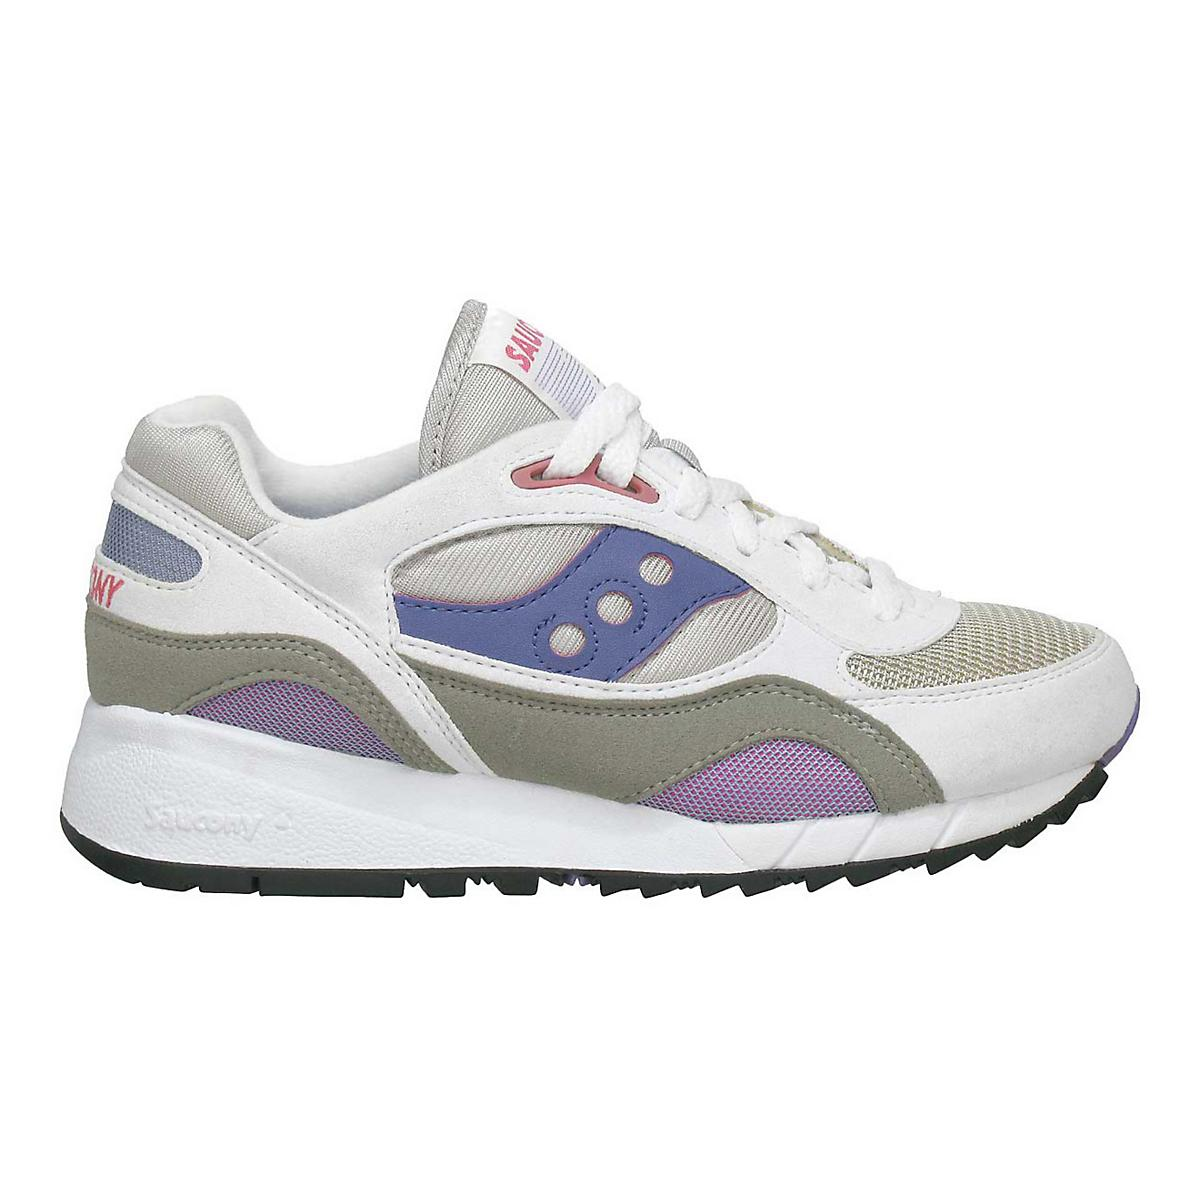 61ad830ebbbc Womens Saucony Shadow 6000 Running Shoe at Road Runner Sports